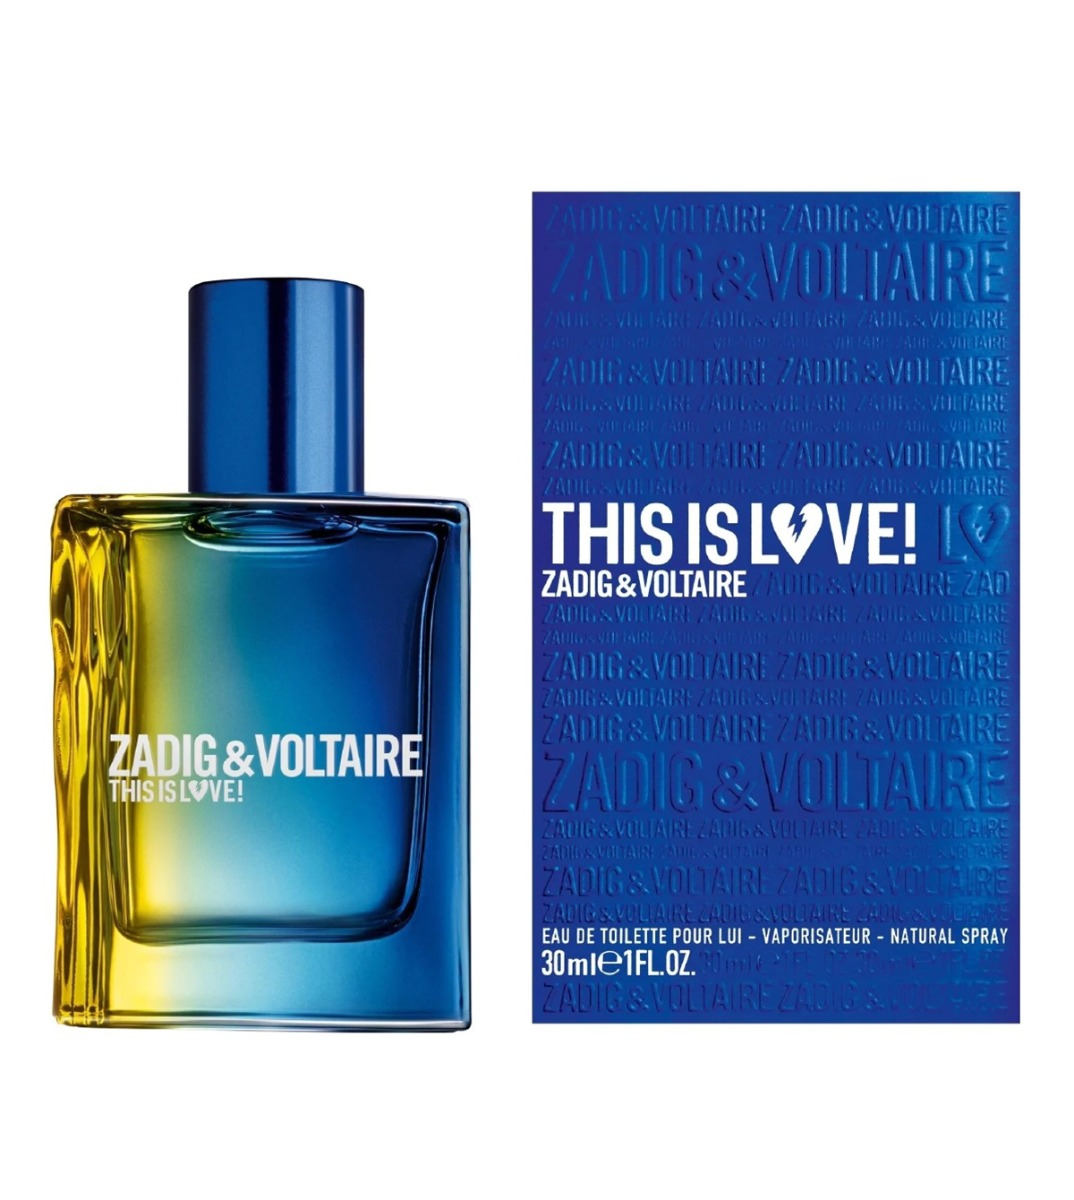 ZADIG&VOLTAIRE THIS IS LOVE FOR HIM ПАРФЮМ ЗА МЪЖЕ